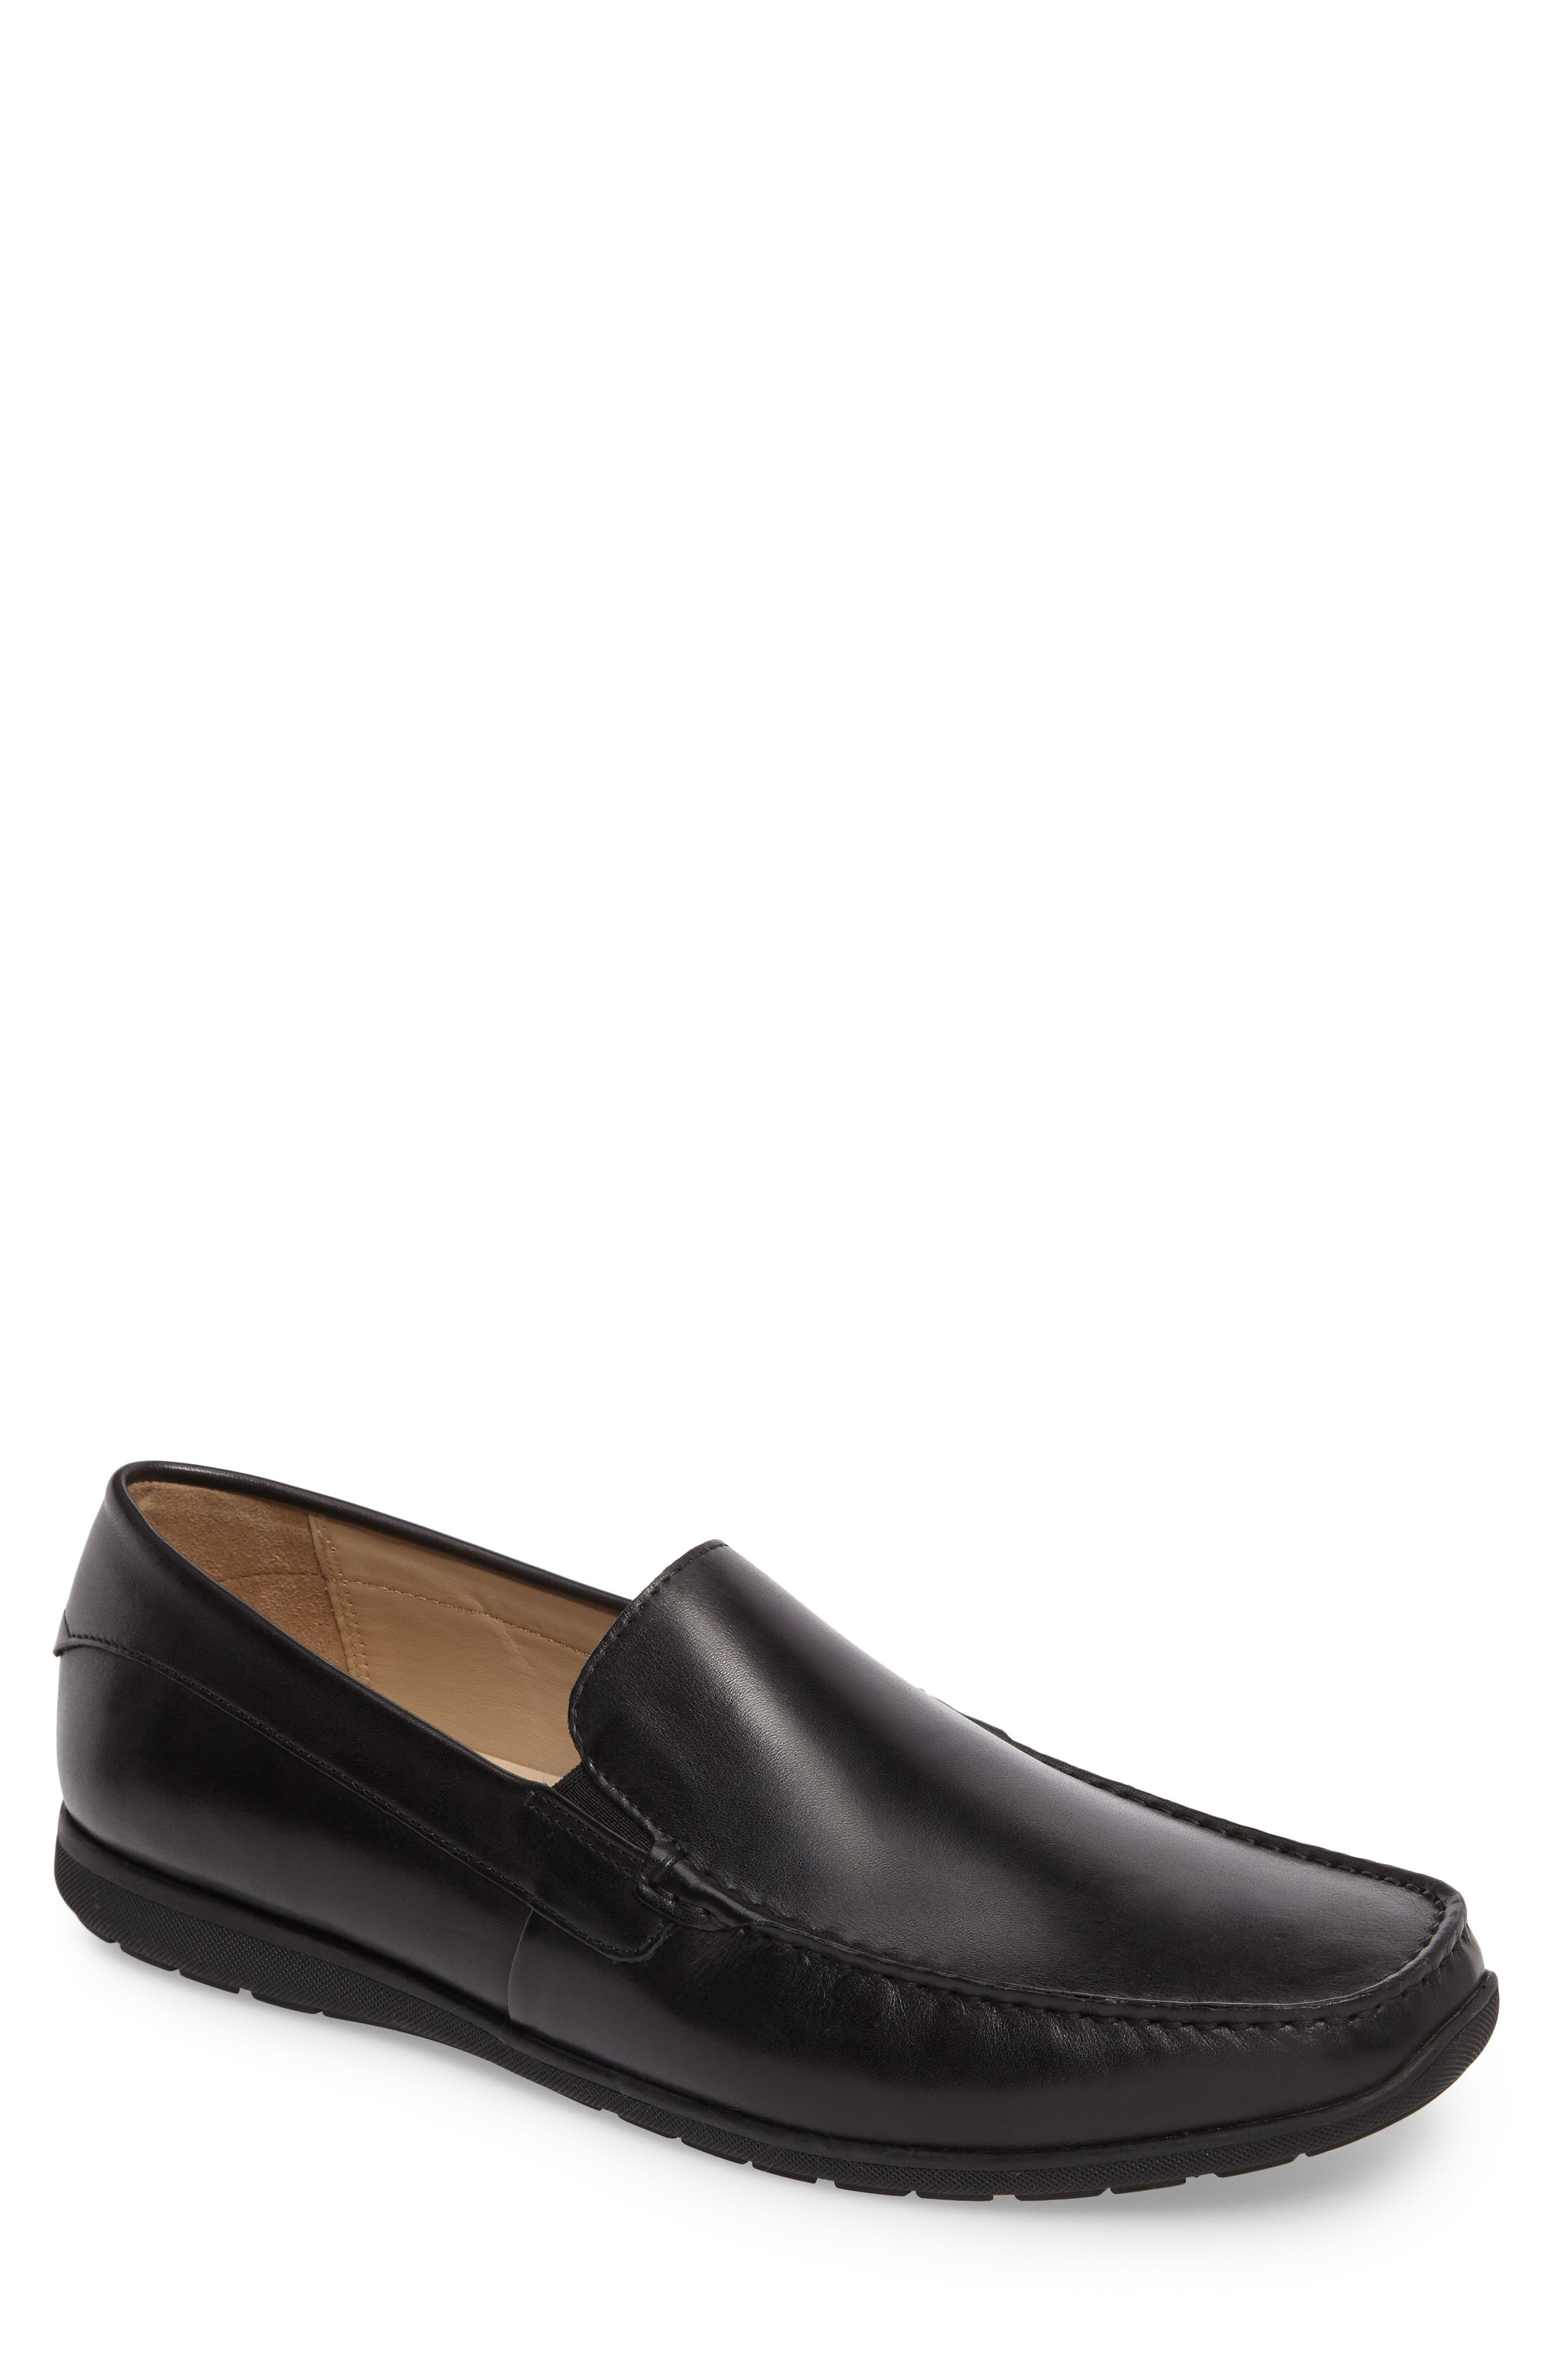 Classic Loafer,                             Main thumbnail 1, color,                             Black Leather